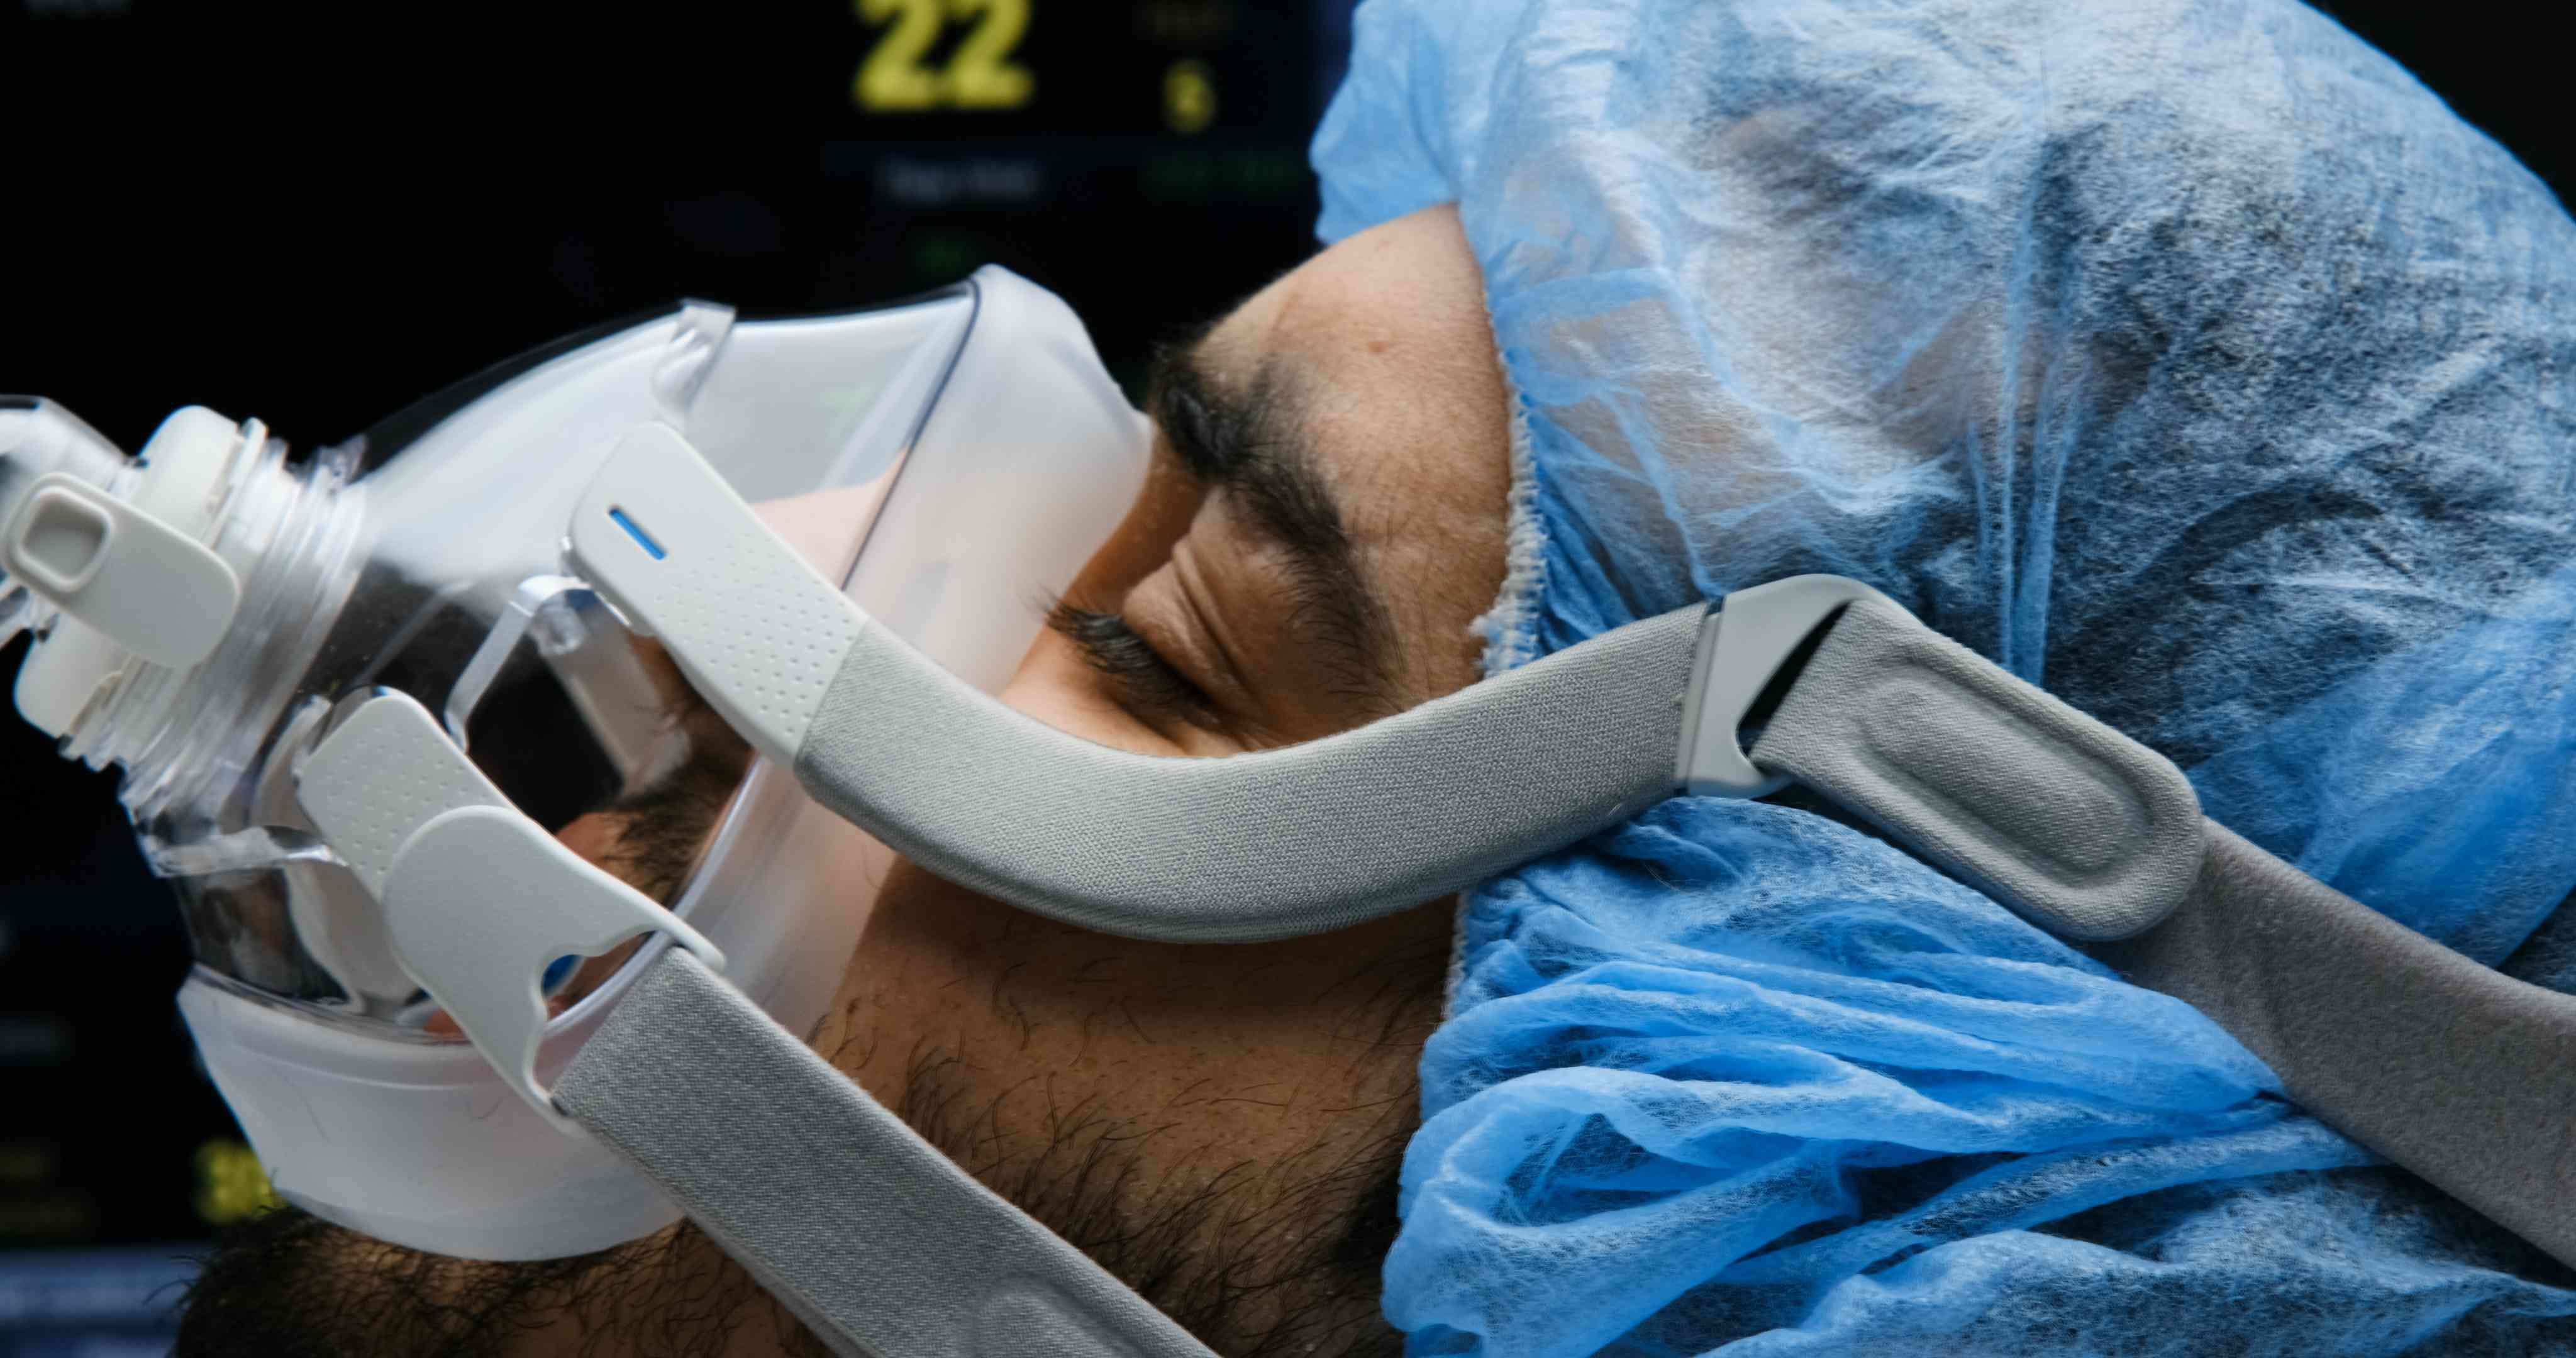 Young man connected to a ventilator mask